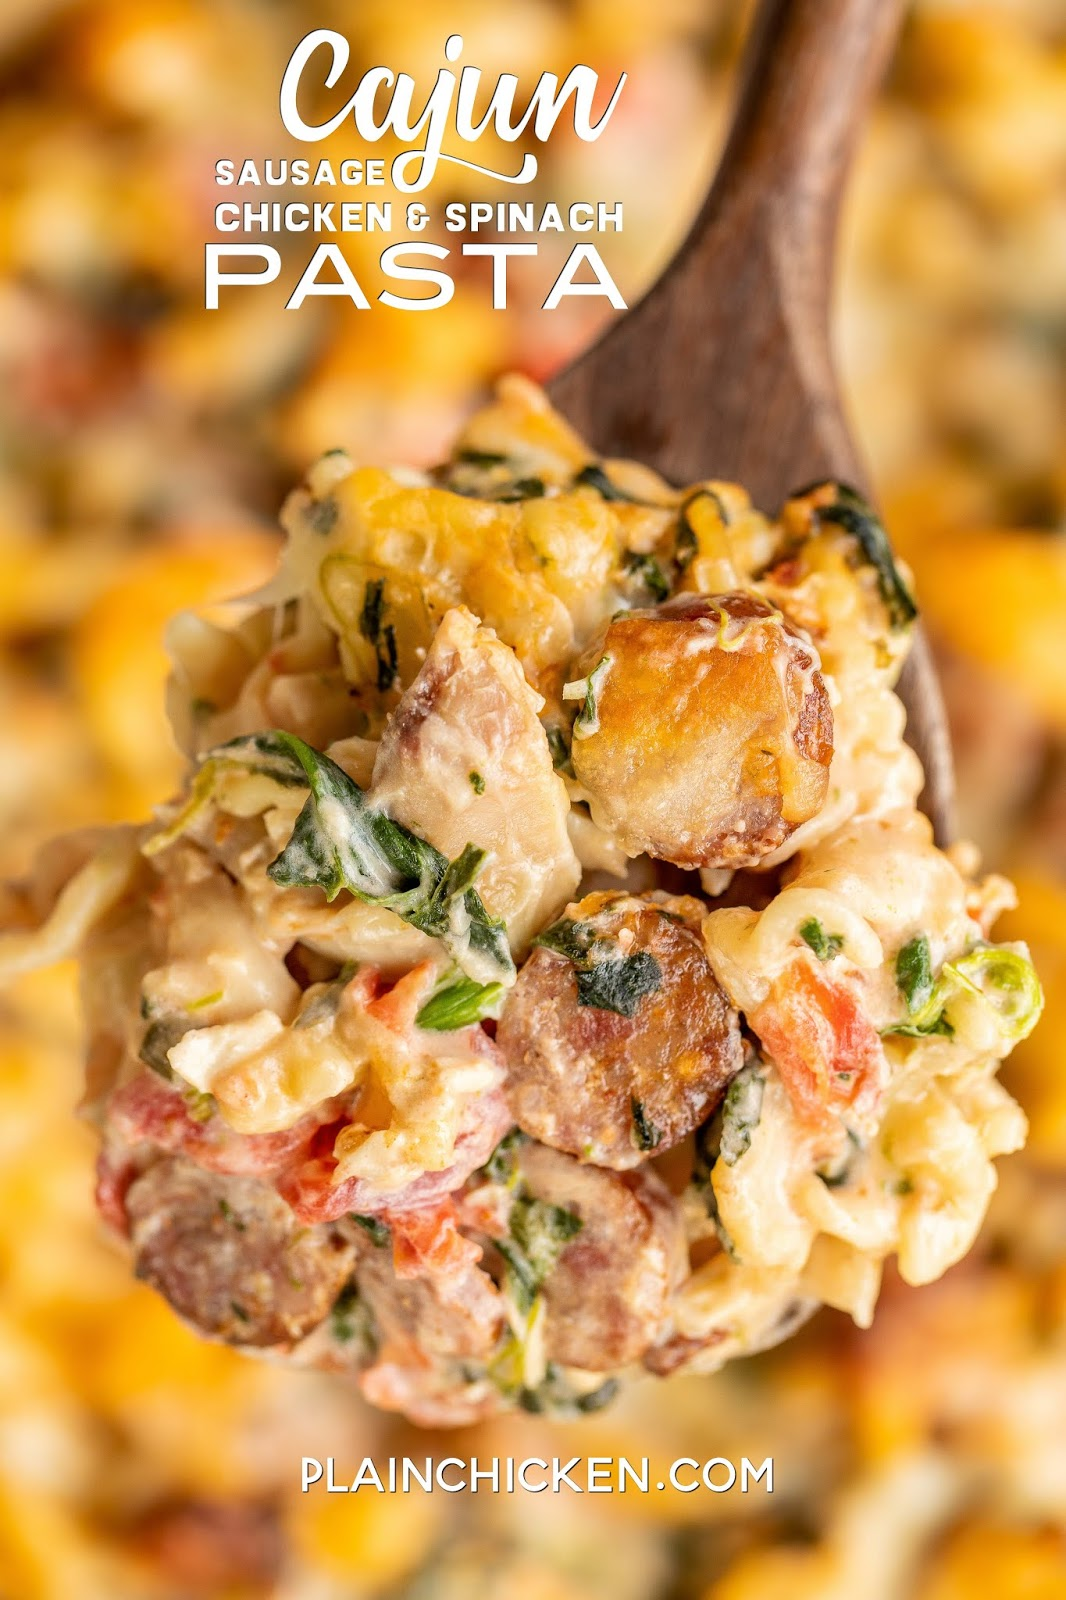 Cajun Sausage Chicken and Spinach Pasta - seriously delicious!! Pasta, andouille sausage, chicken, diced tomatoes, chive and onion cream cheese, heavy cream, mozzarella cheese, parmesan cheese and cajun seasoning. Makes a ton! Can divide into two pans and freeze one for later. Great for potlucks and dinner parties. Everyone LOVES this casserole! #cajun #mardigras #freezermeal #pasta #casserole